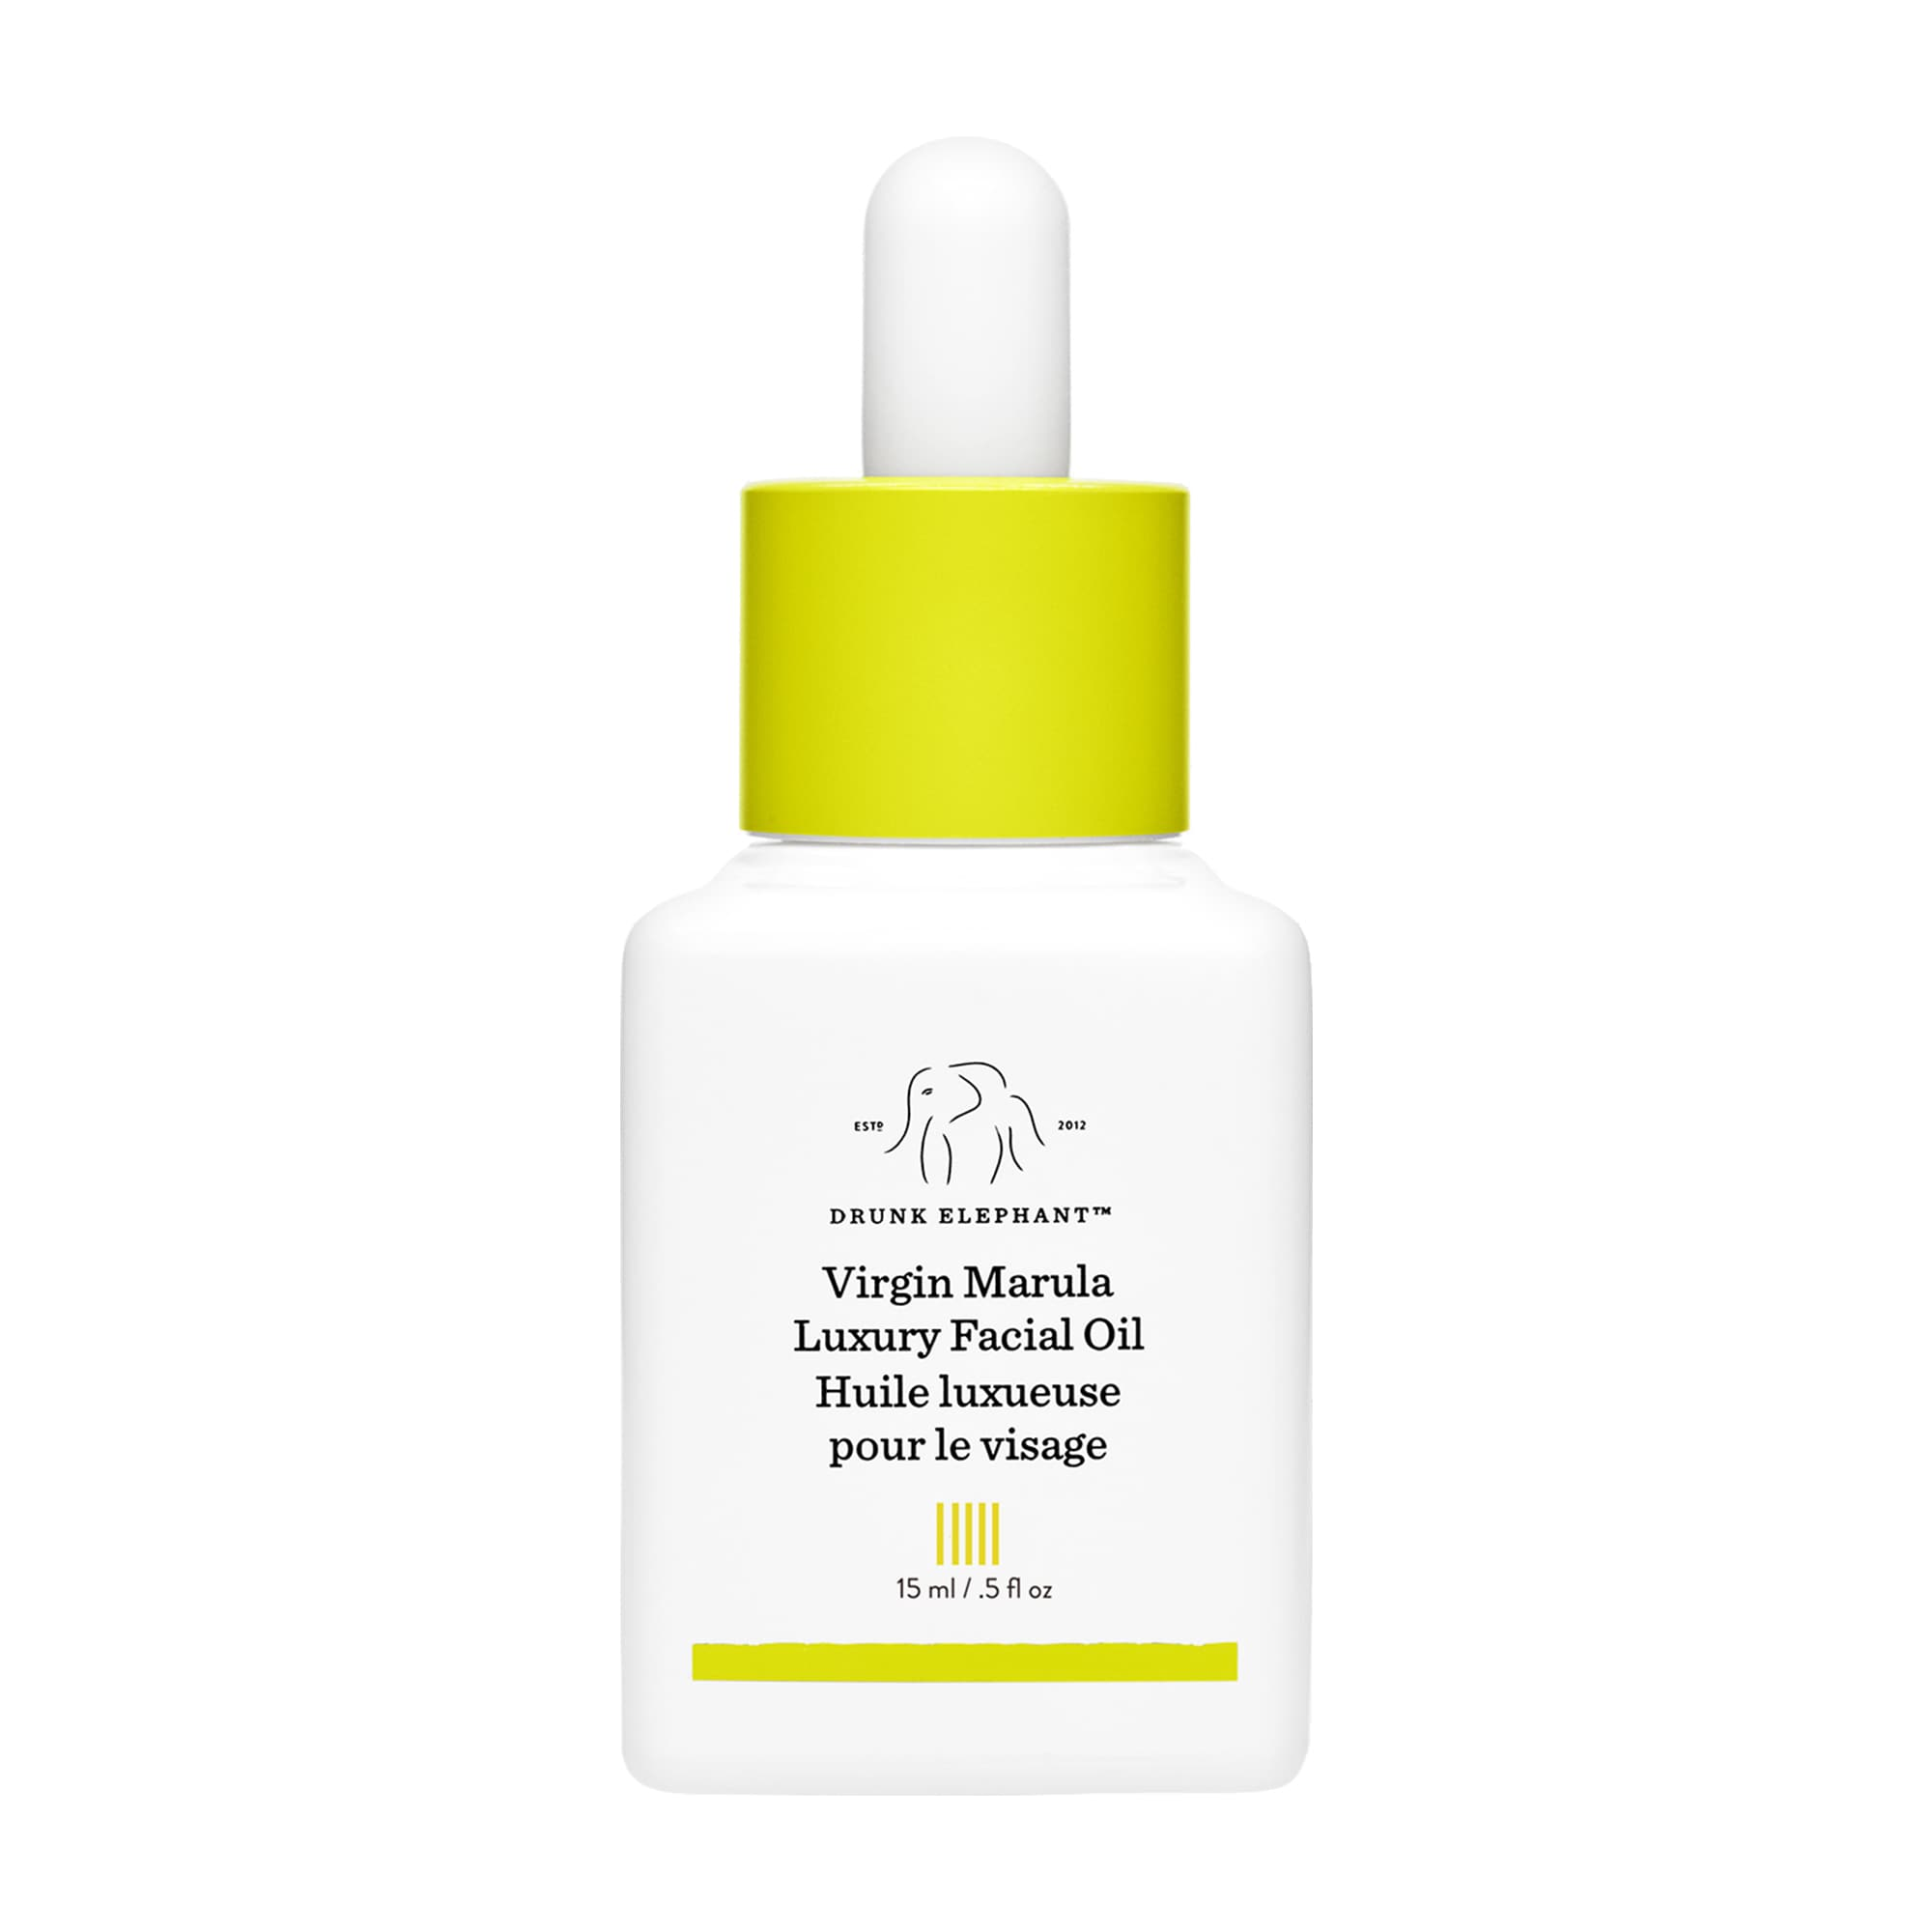 Drunk Elephant Virgin Marula Antioxidant Face Oil